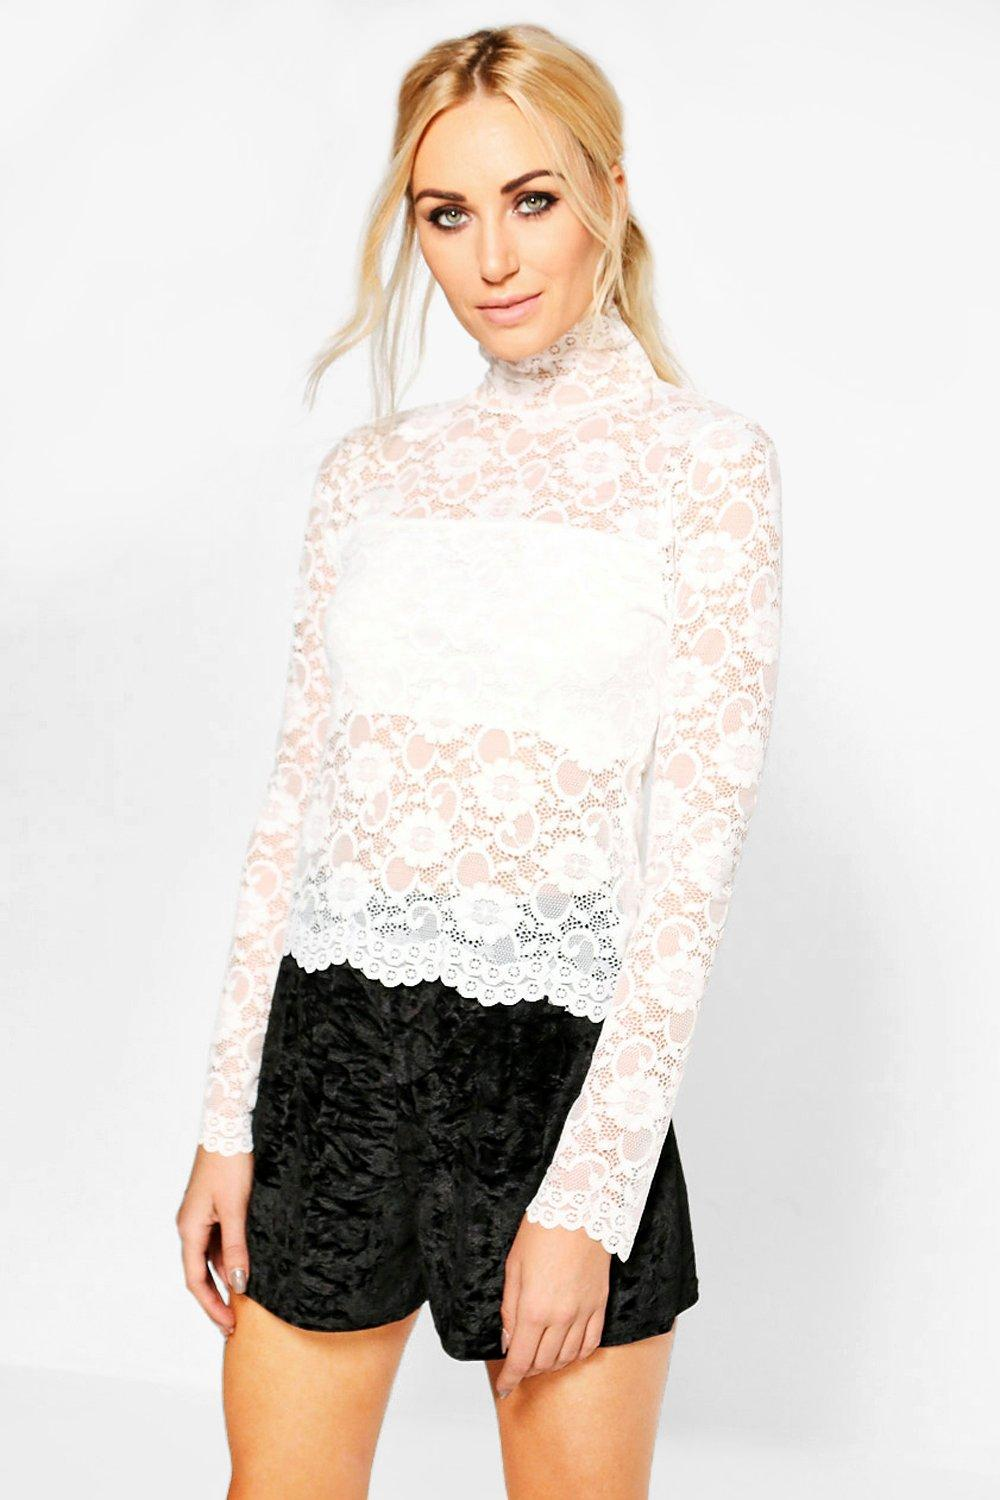 296347eadf7e7 ... Lace High Neck Top. Hover to zoom